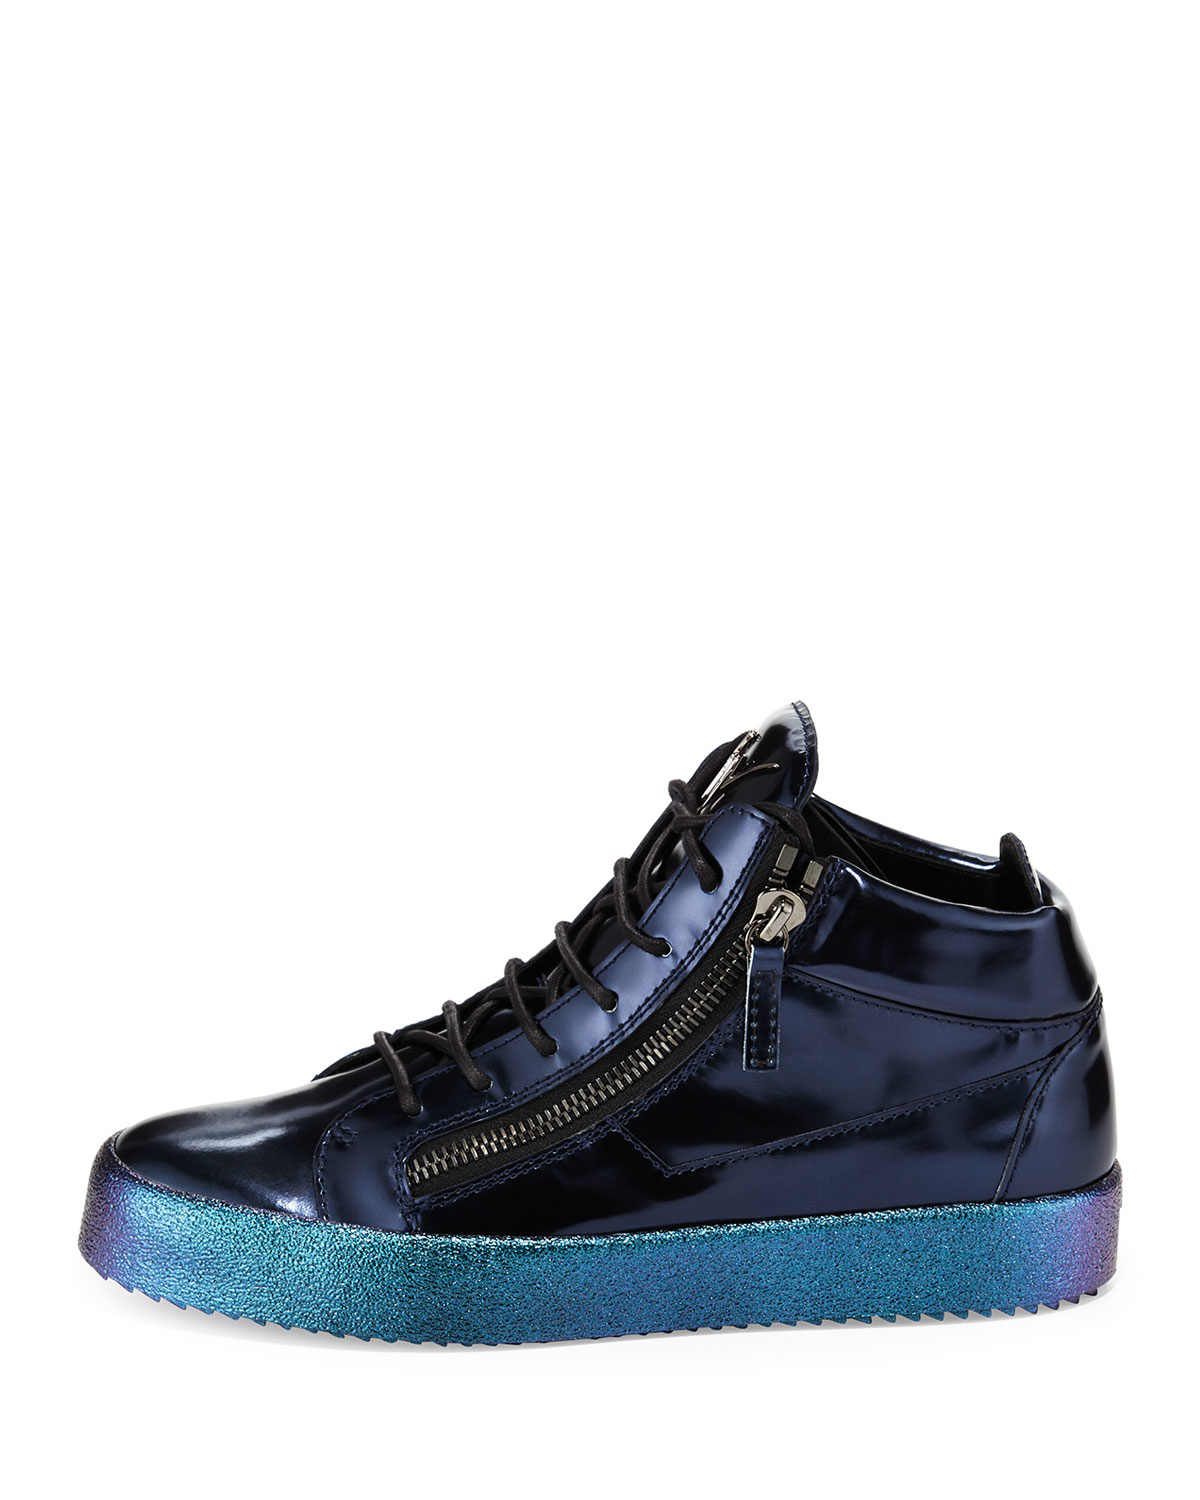 giuseppe zanotti vegas patent leather mid top sneakers in blue for men lyst. Black Bedroom Furniture Sets. Home Design Ideas